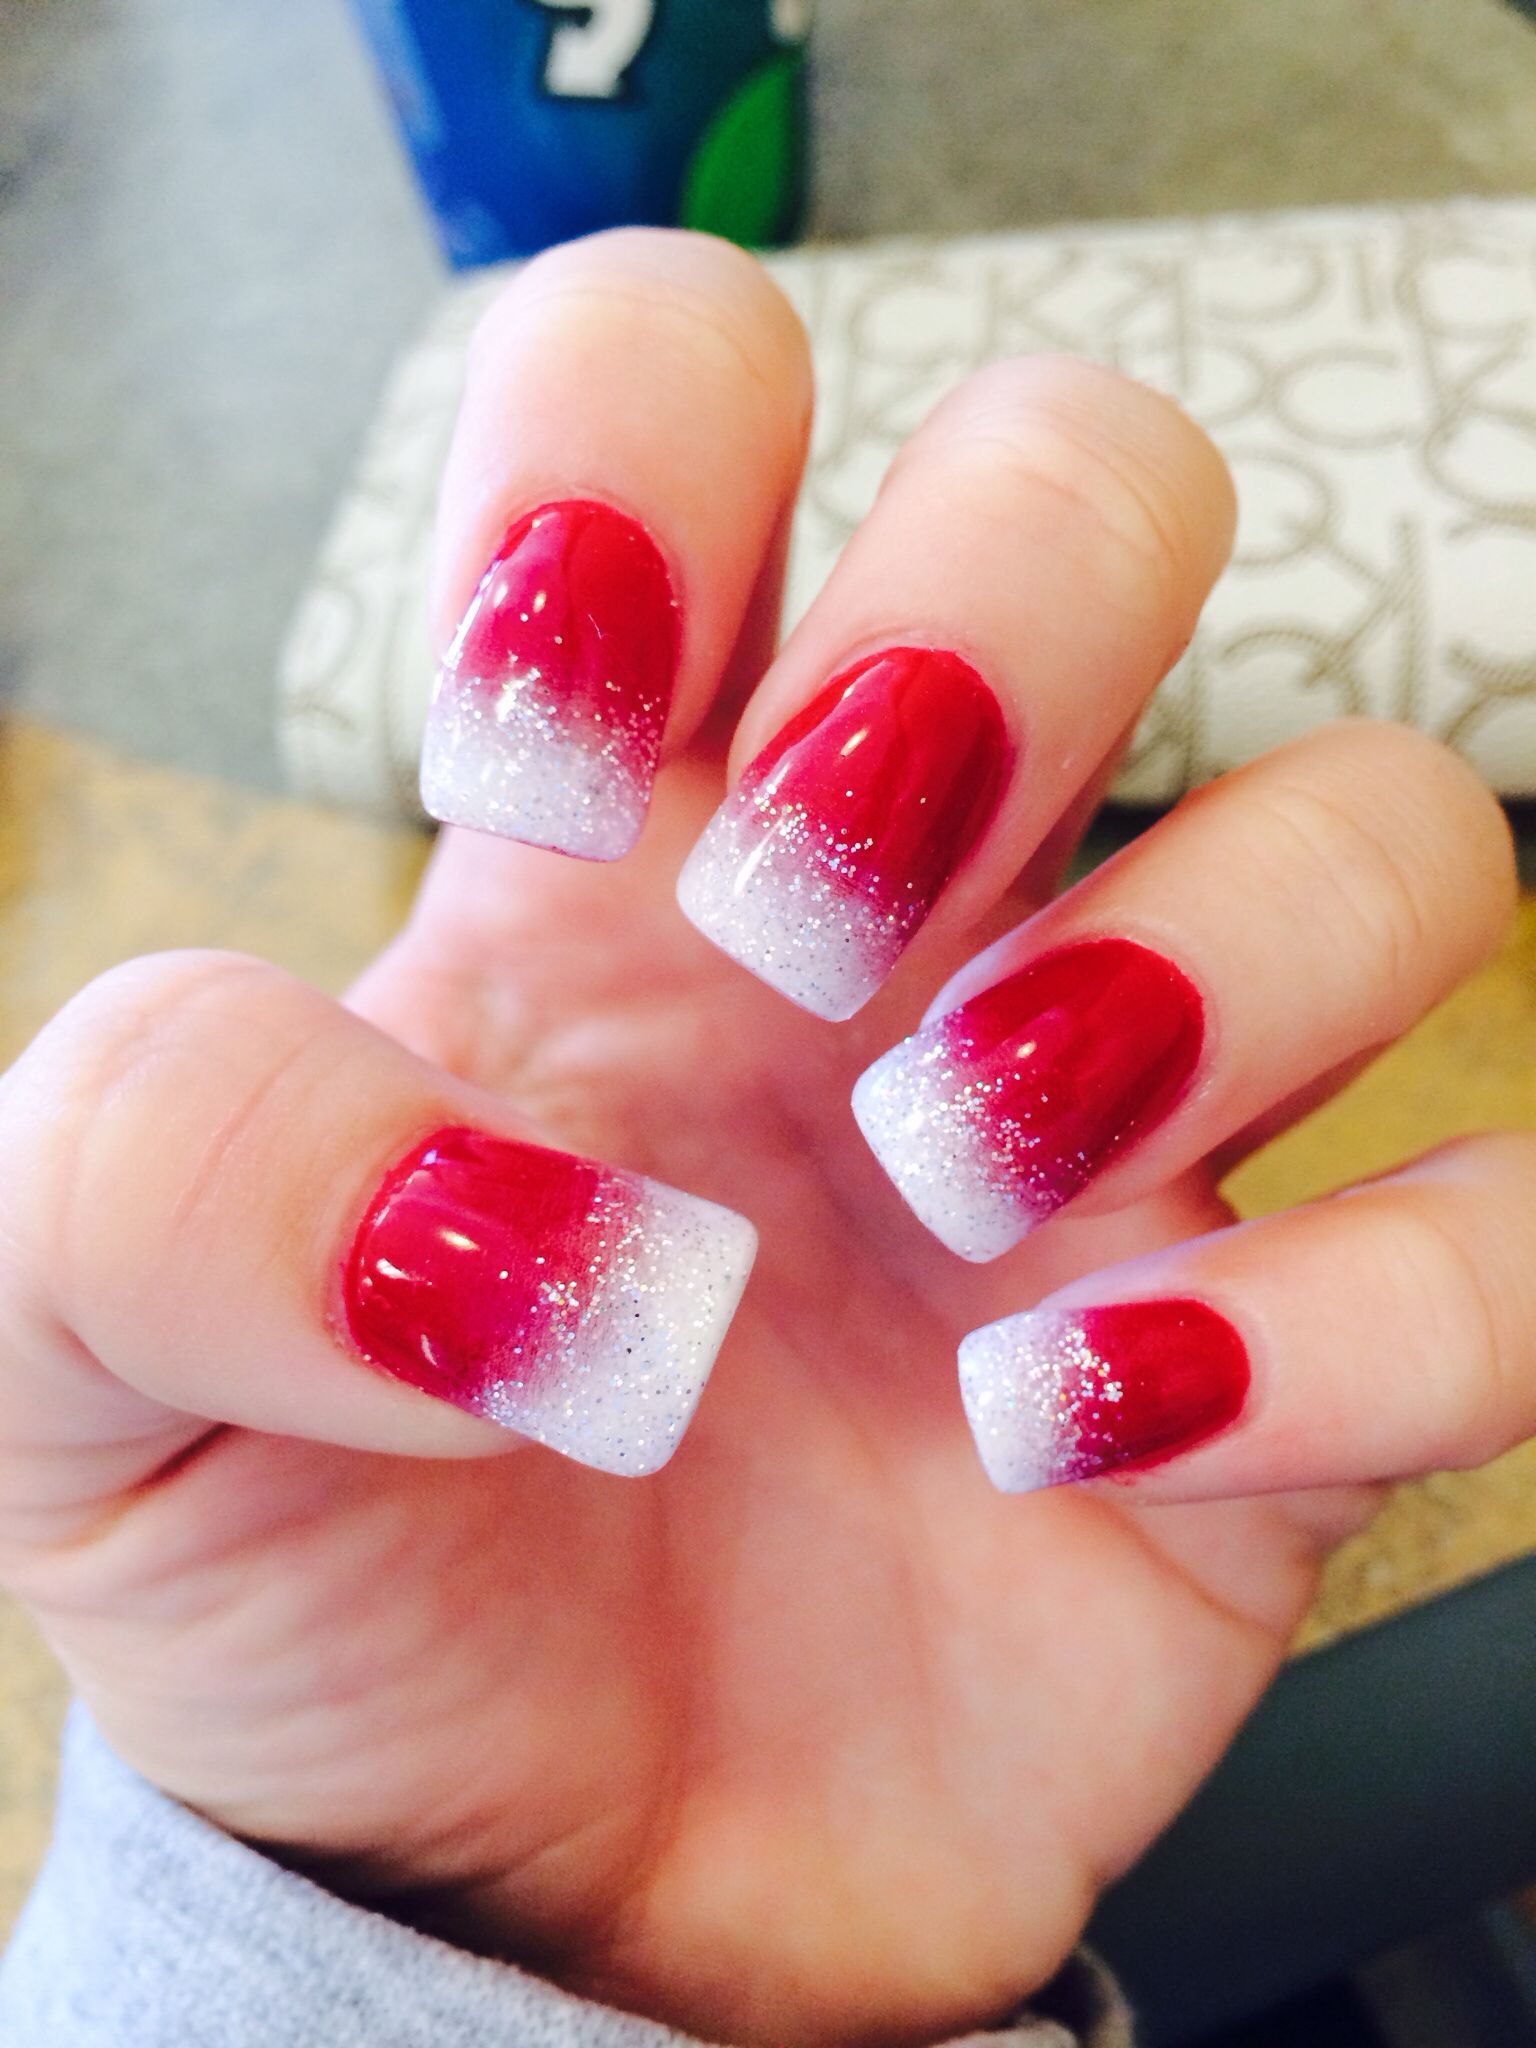 Red Nails With White Ombre And Sparkle At The Tip Red And White Nails Ombre Nails Glitter Red Ombre Nails